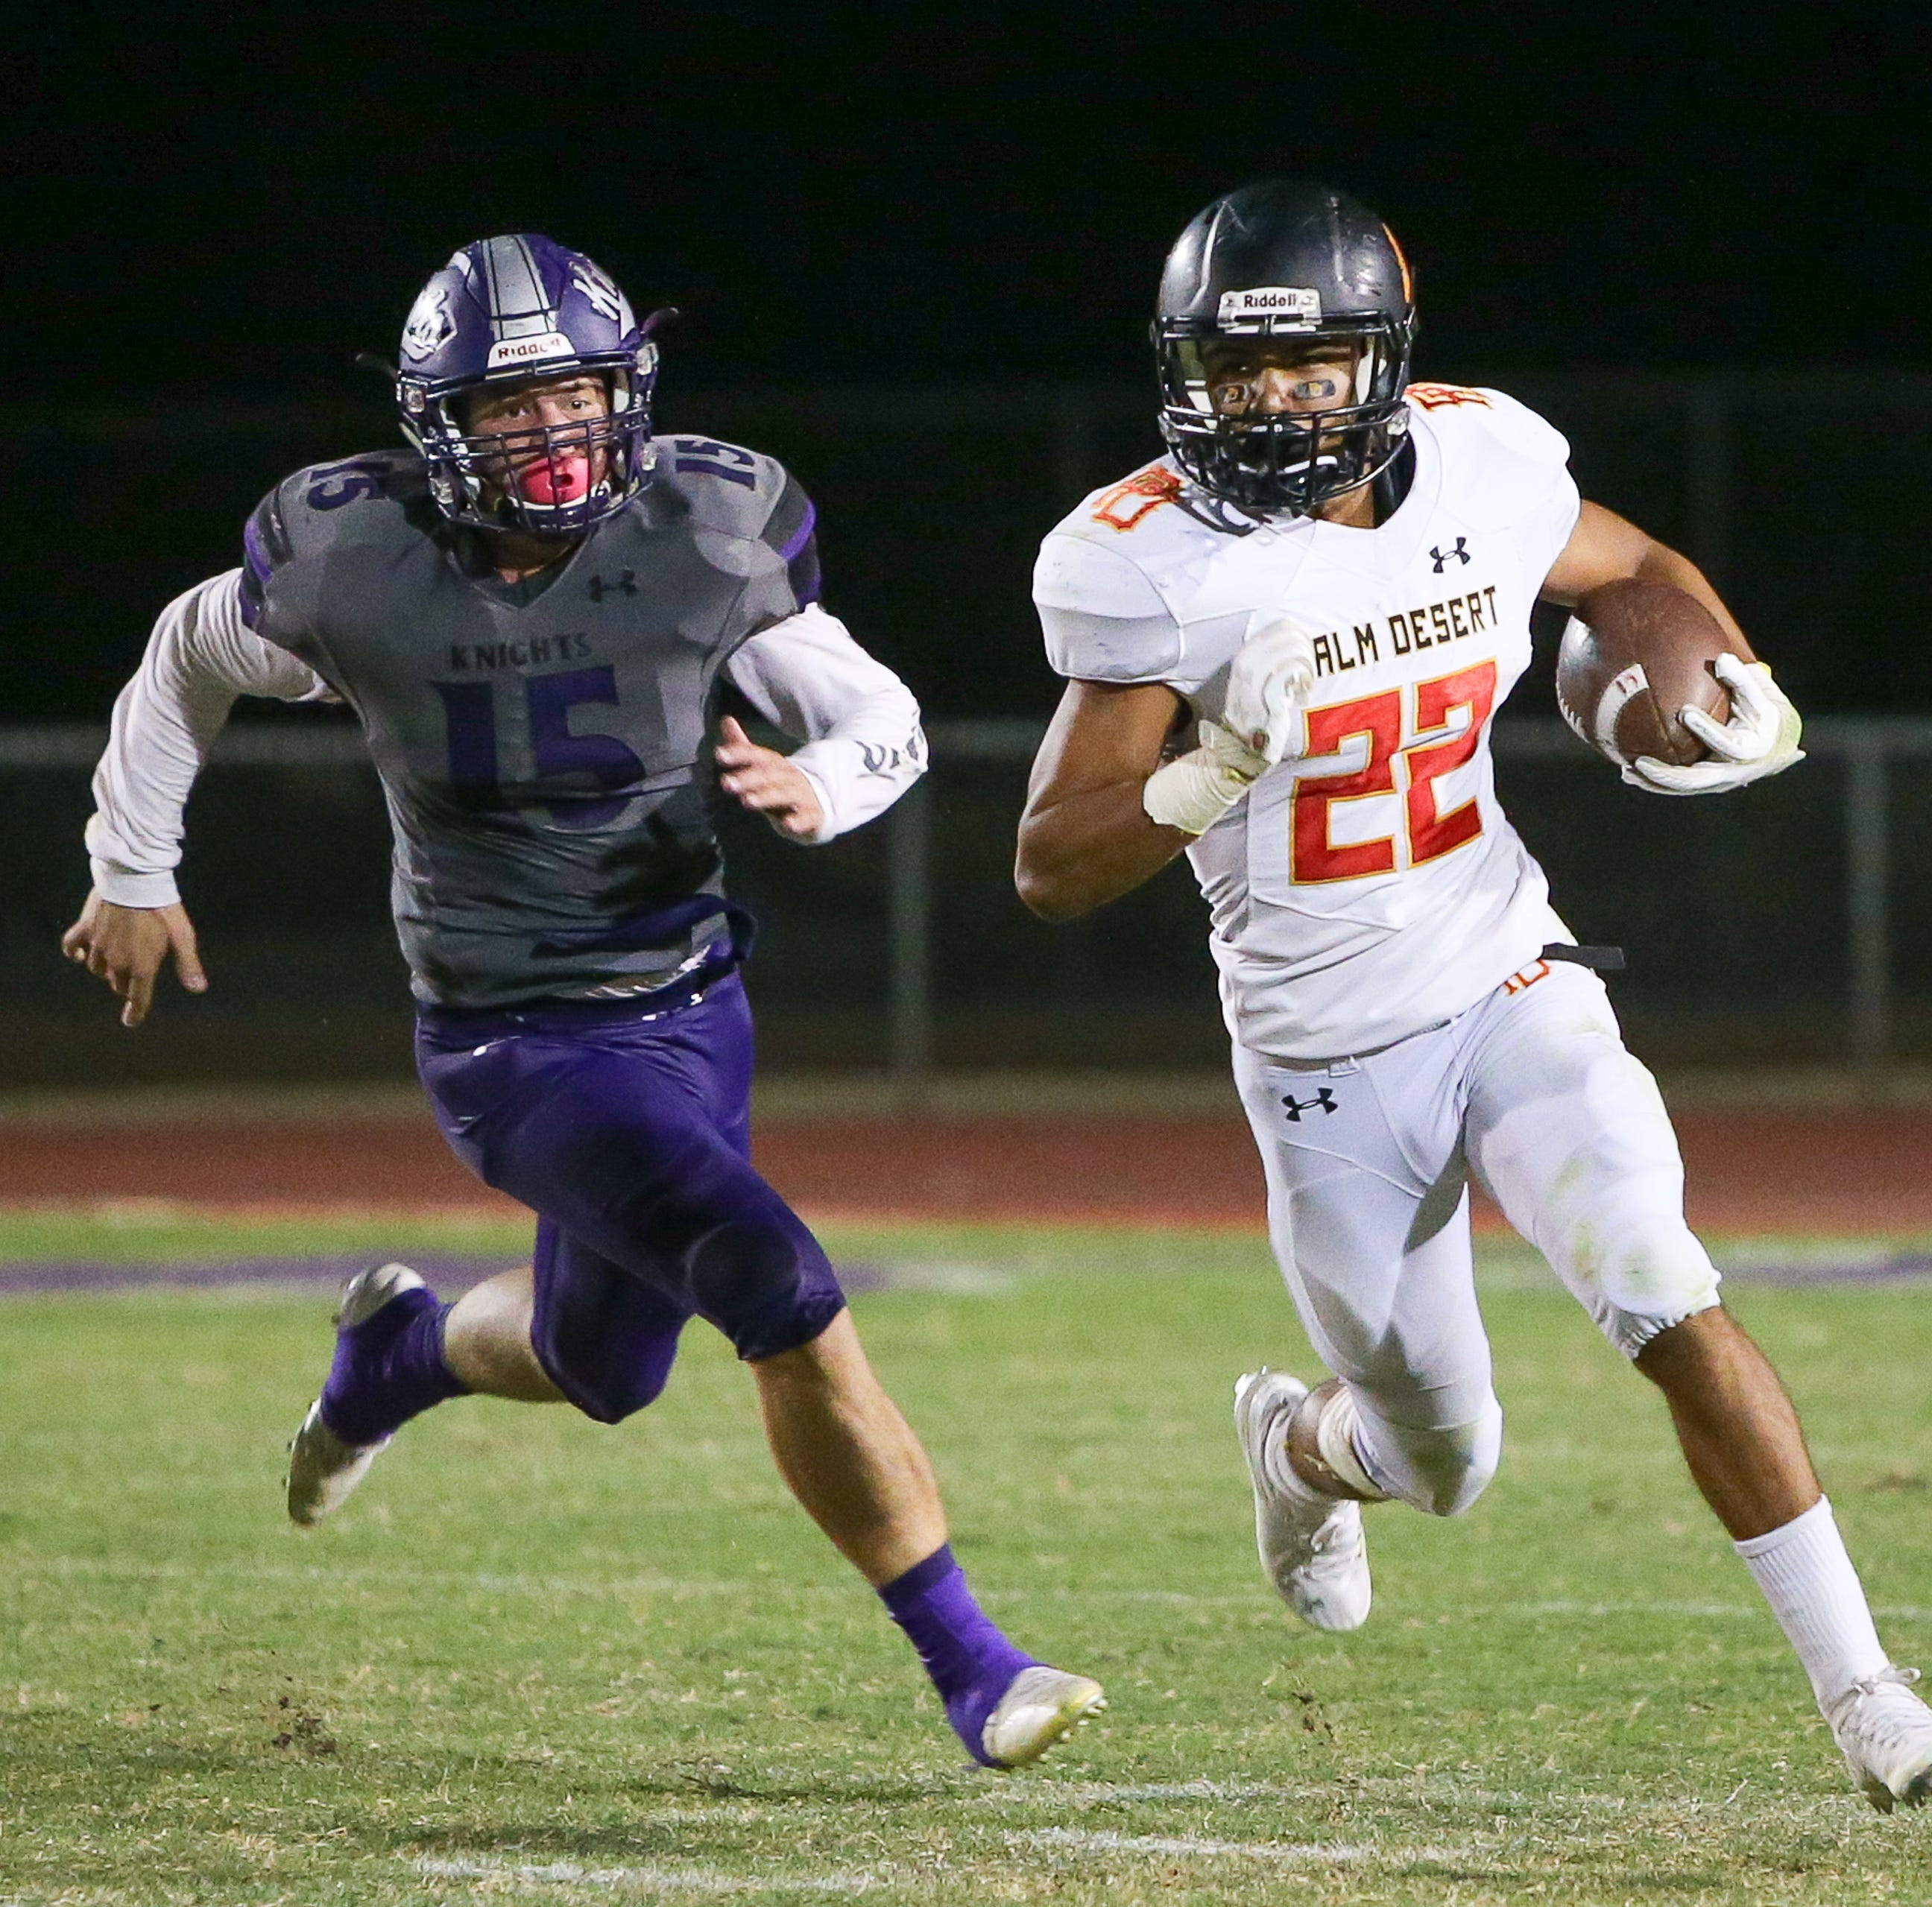 2018 All-Desert Sun football: Meet the first and second team players